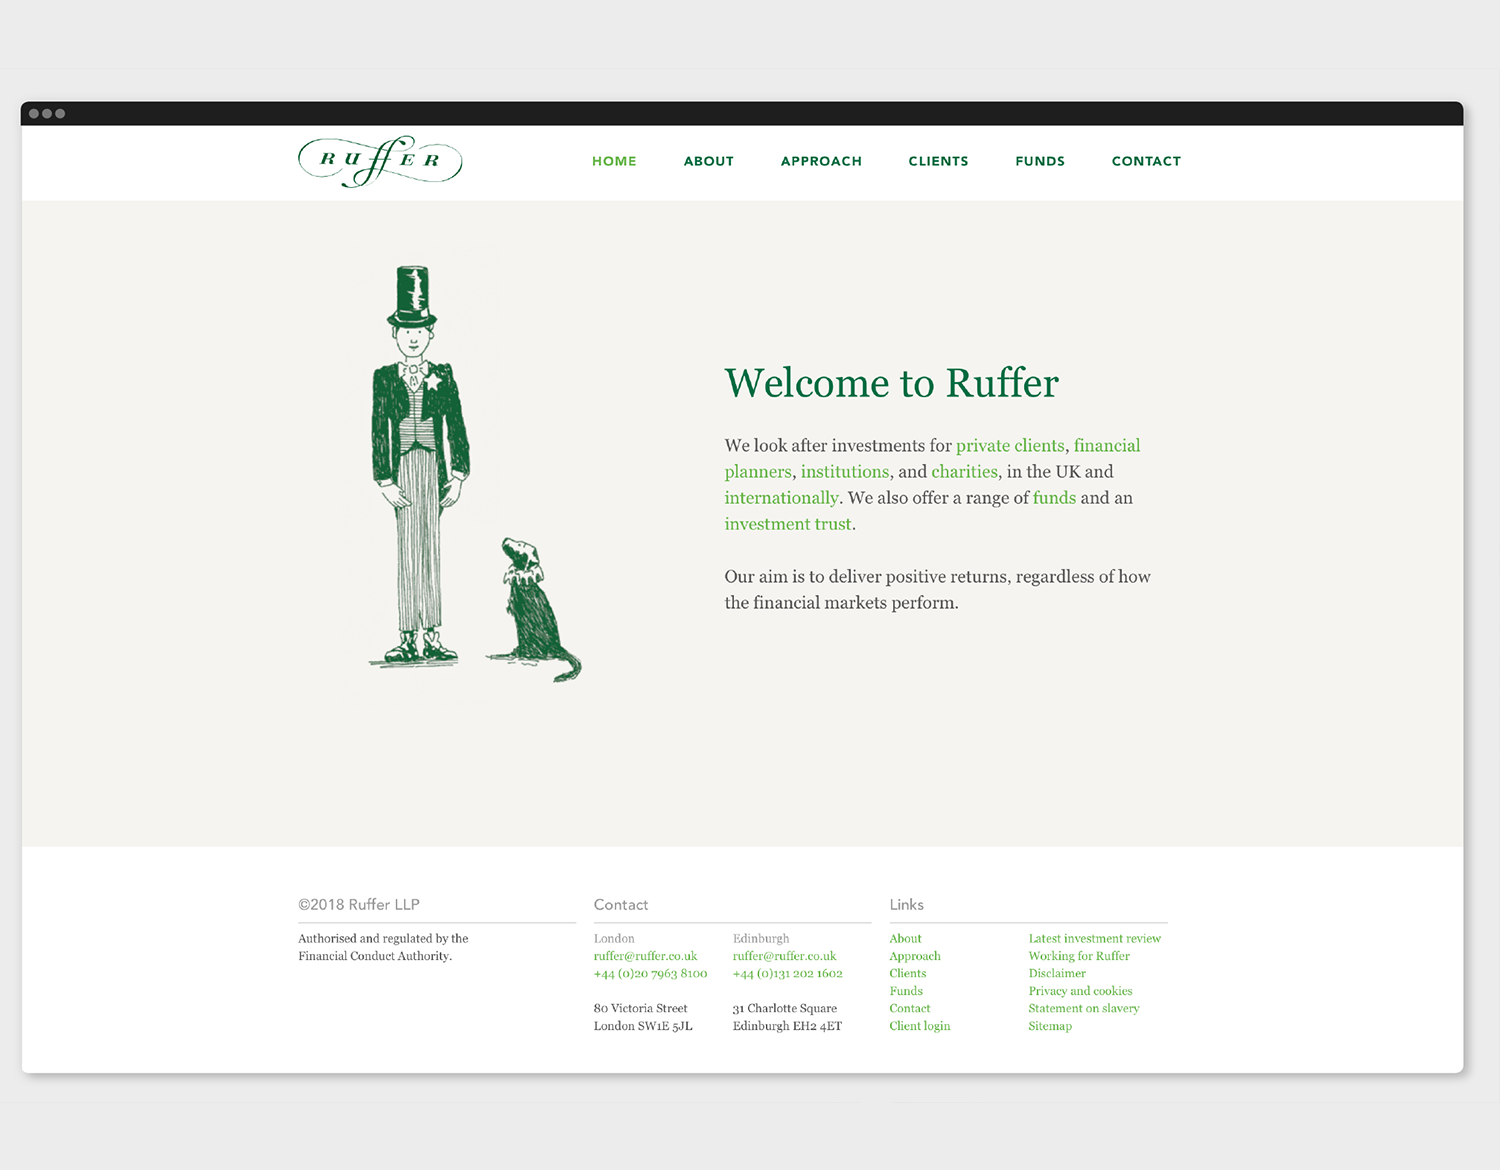 Ruffer LLP - Take a bow